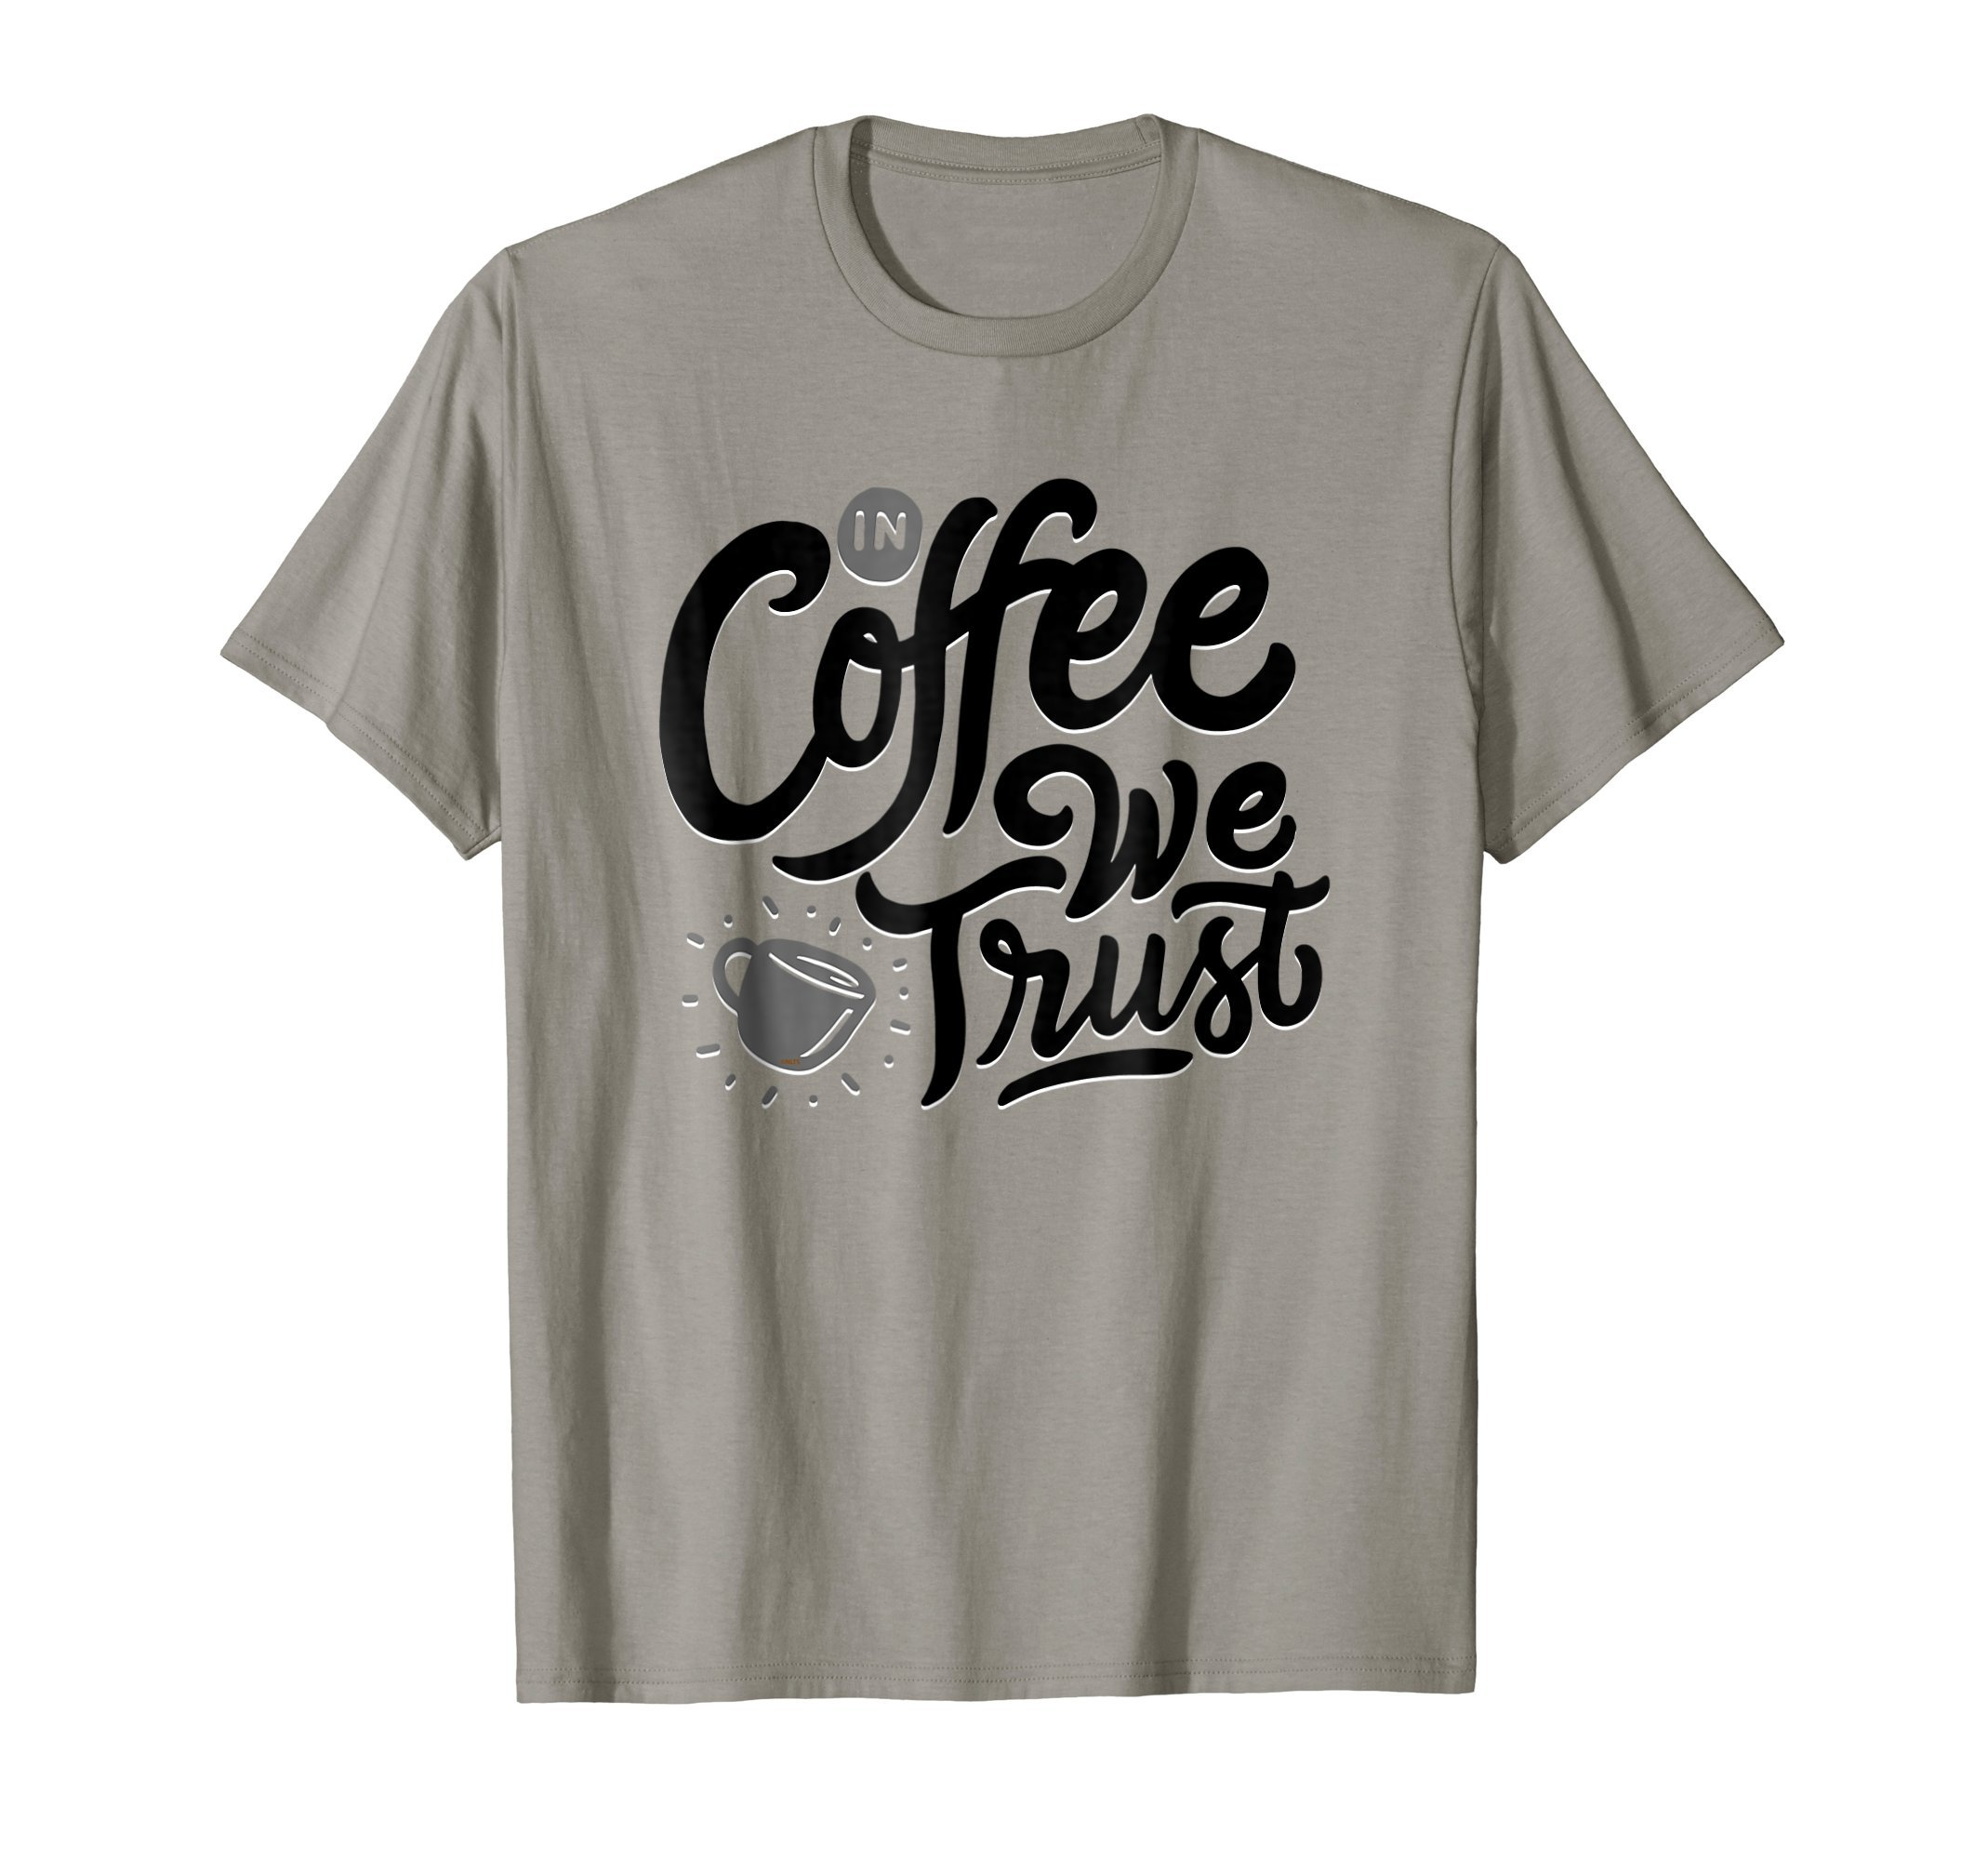 In-Coffee-We-Trust-Funny-Humor-T-Shirt-Tee-Gift-Shirt